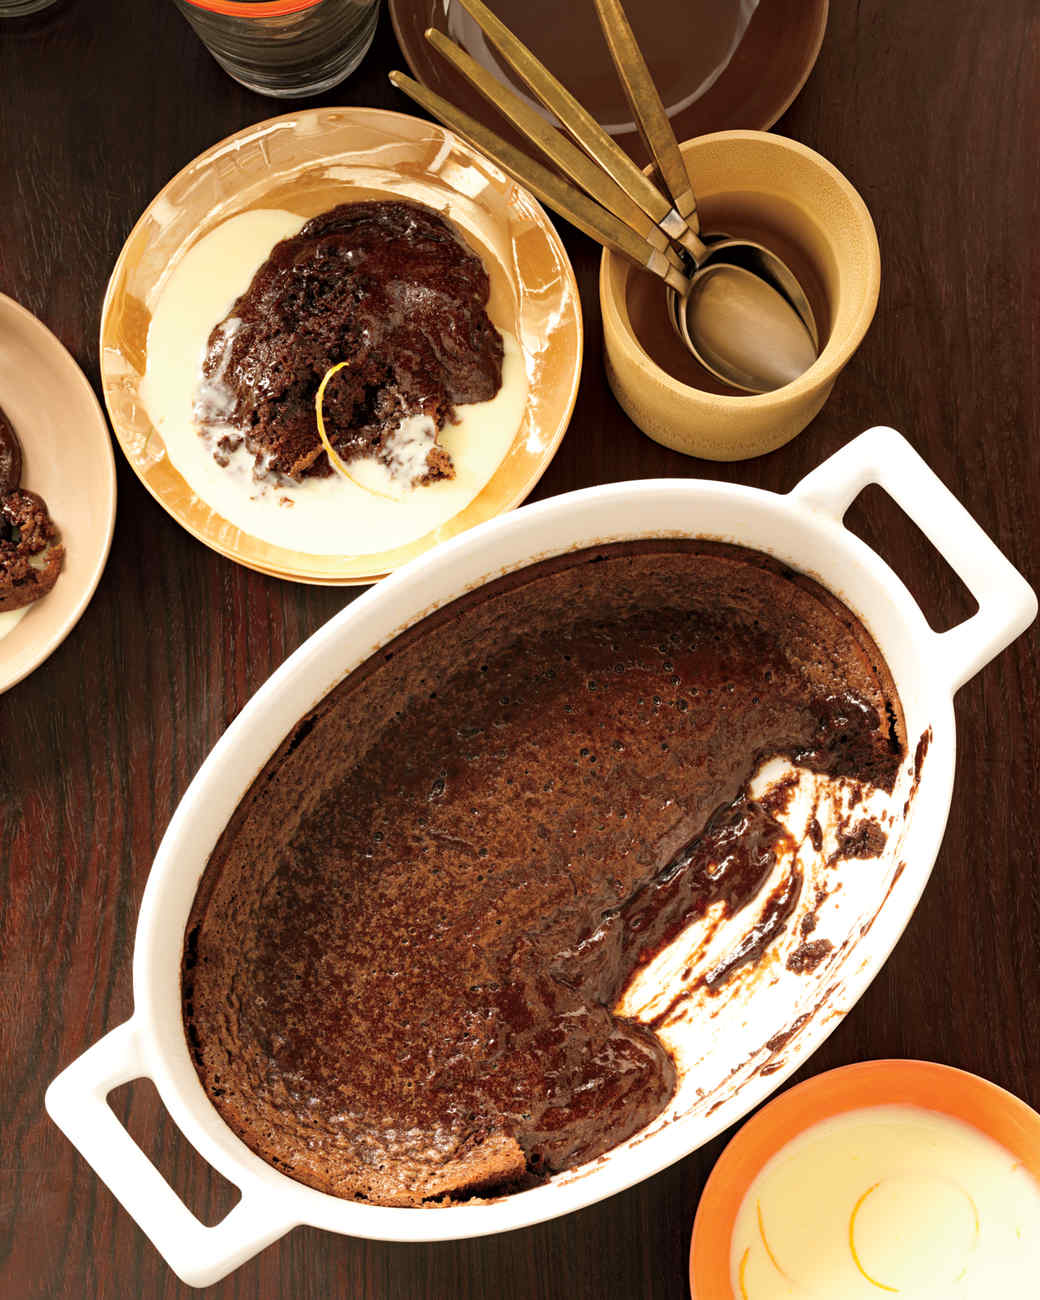 Soft Chocolate Cake with Orange Creme Anglaise